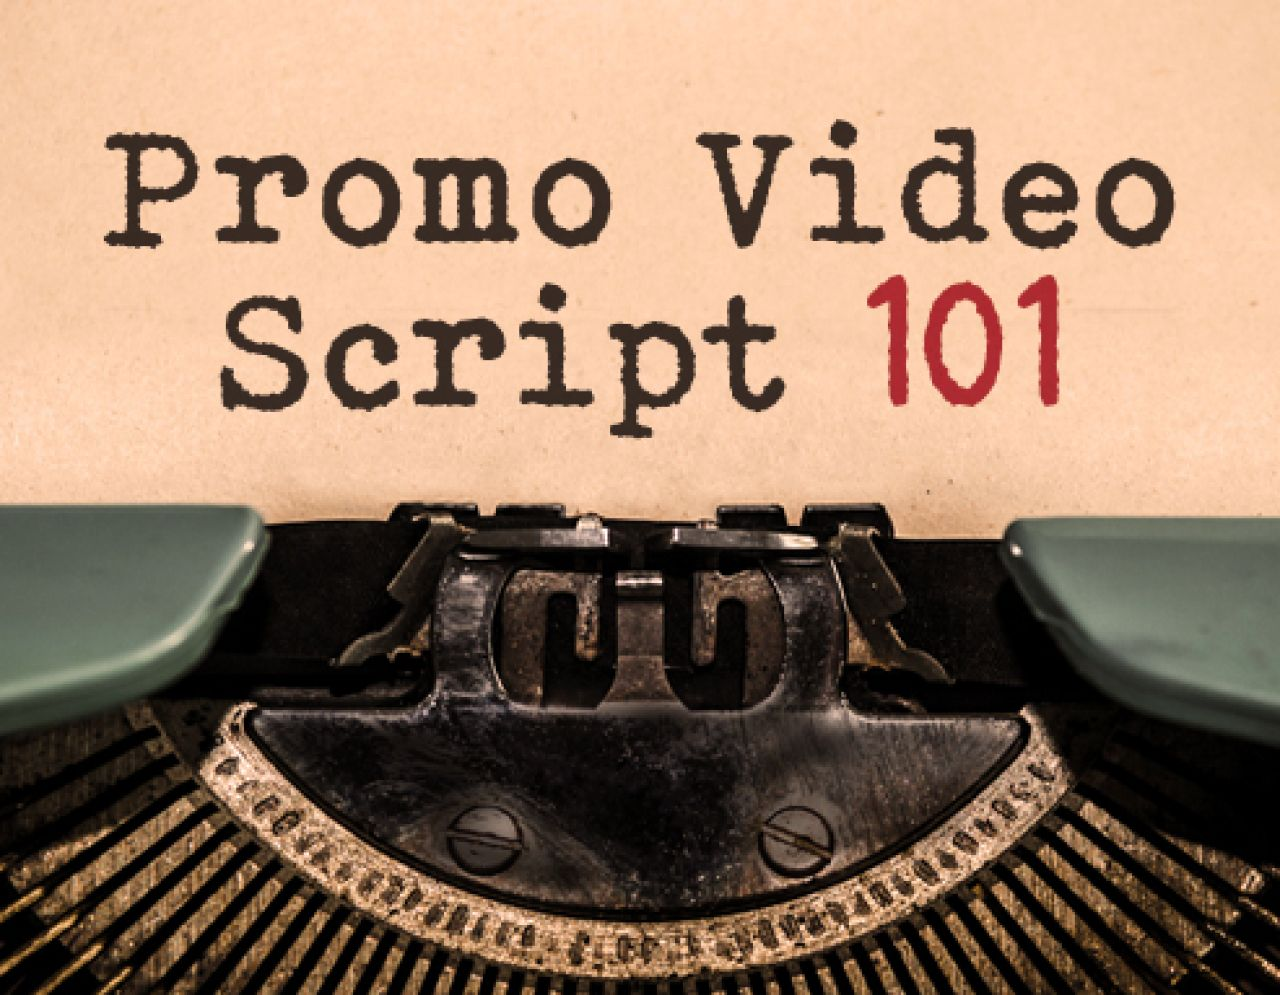 Christmas contests, games, scripts: a selection of videos